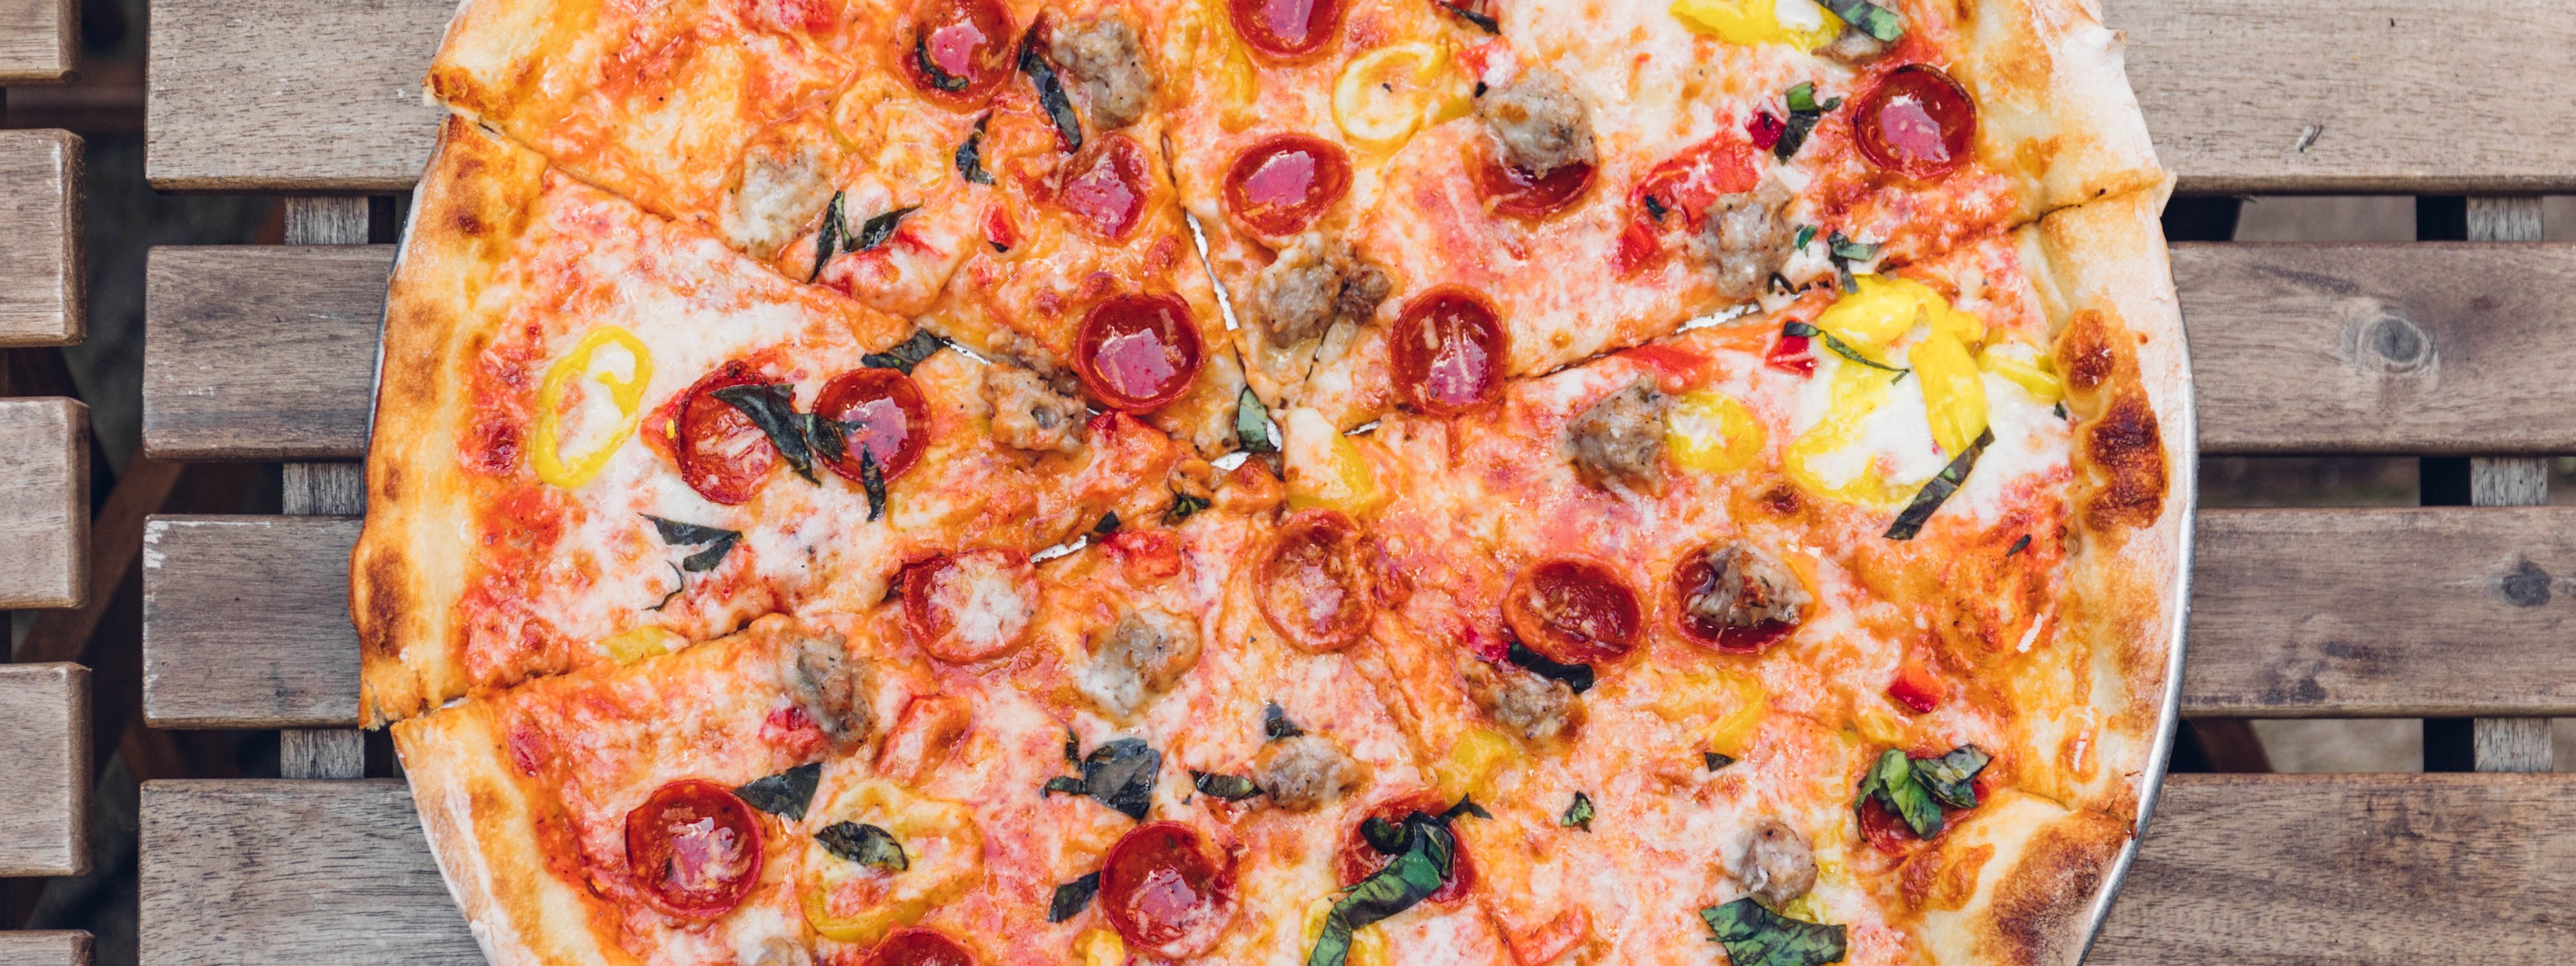 Where To Get Pizza Delivery In Philadelphia - Philadelphia - The Infatuation